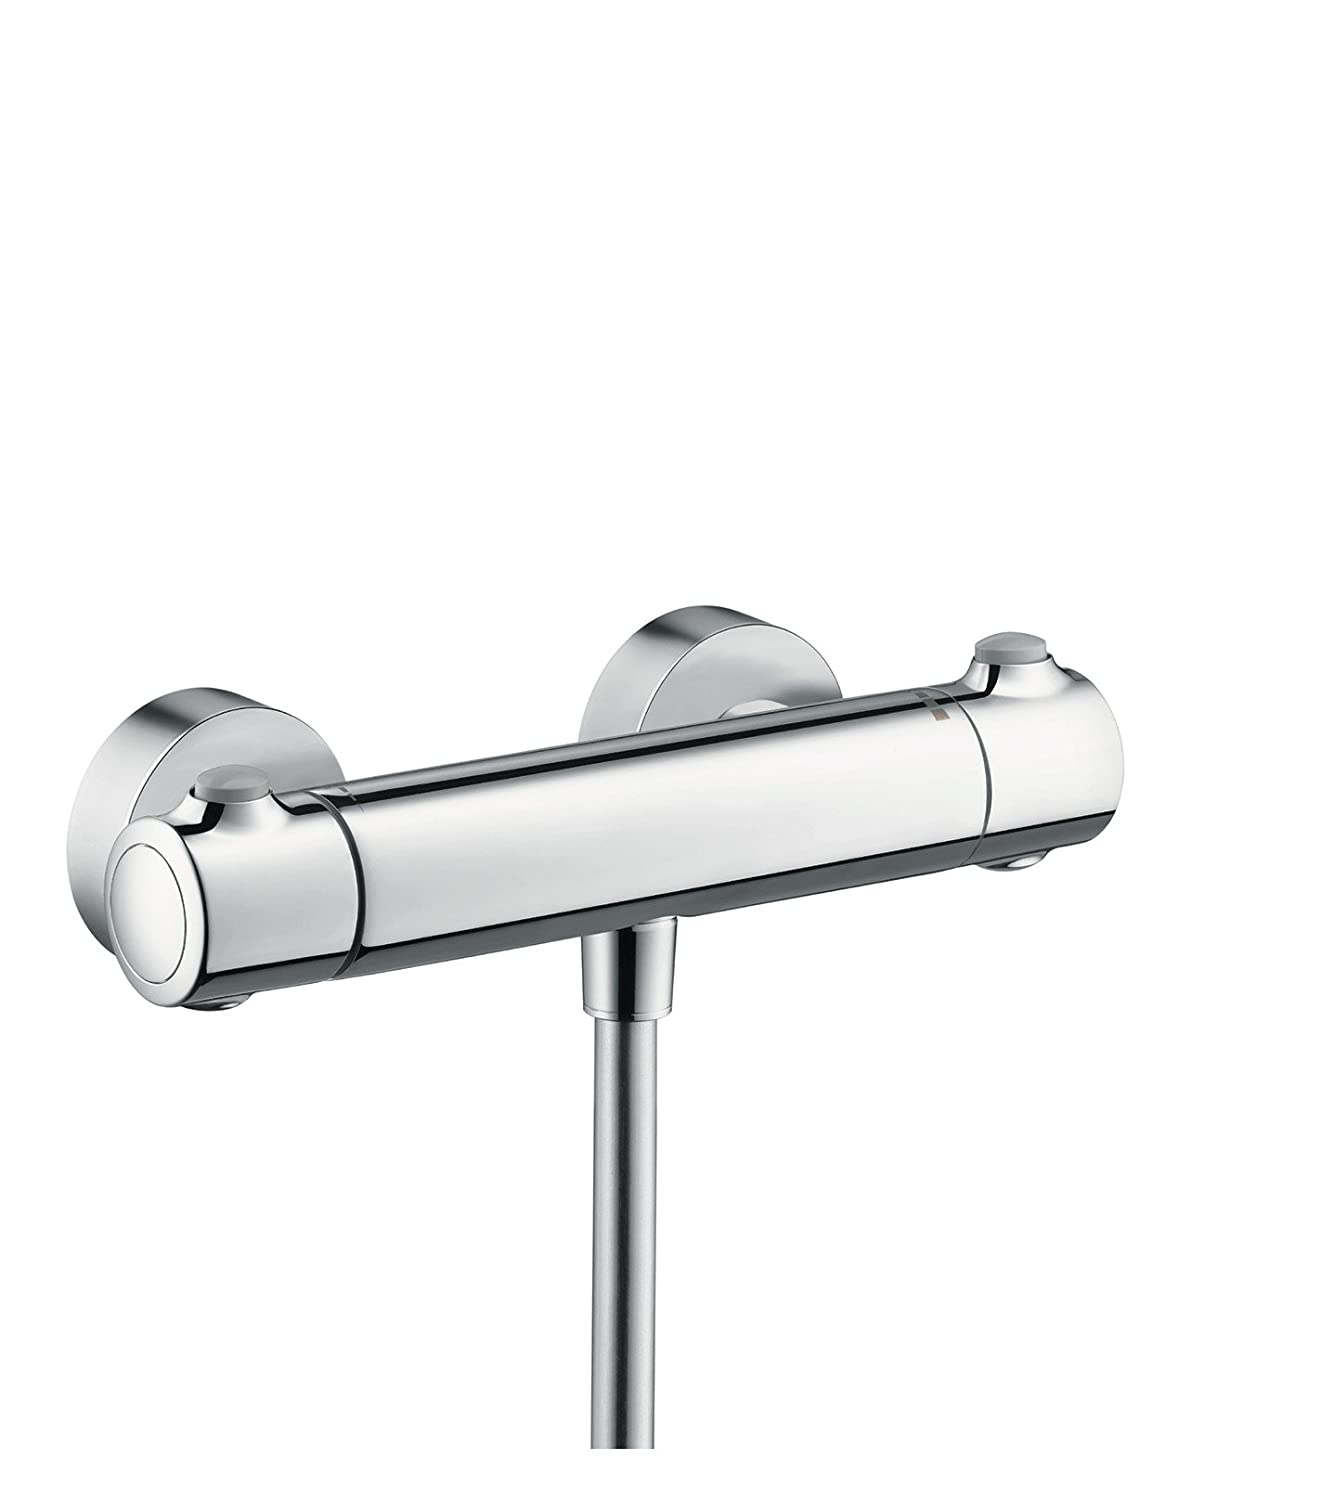 hansgrohe Ecostat 1001 SL thermostatic shower mixer chrome Amazon